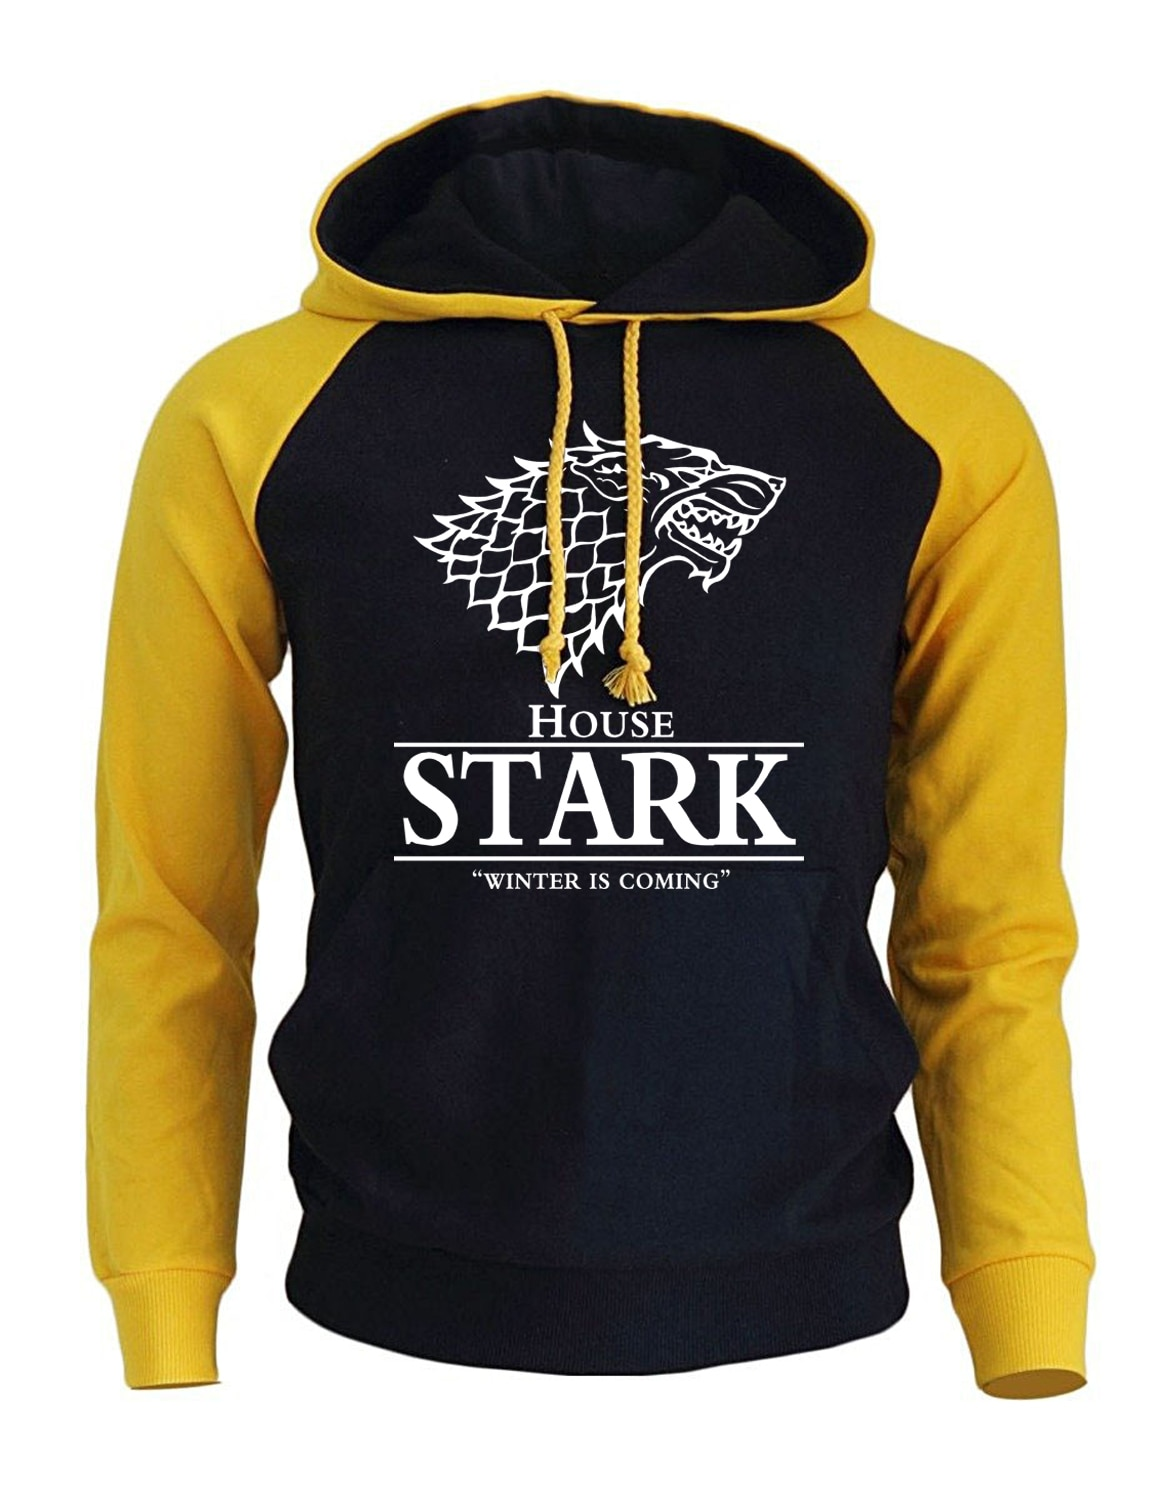 House Stark Game Of Thrones Themed Hoodie